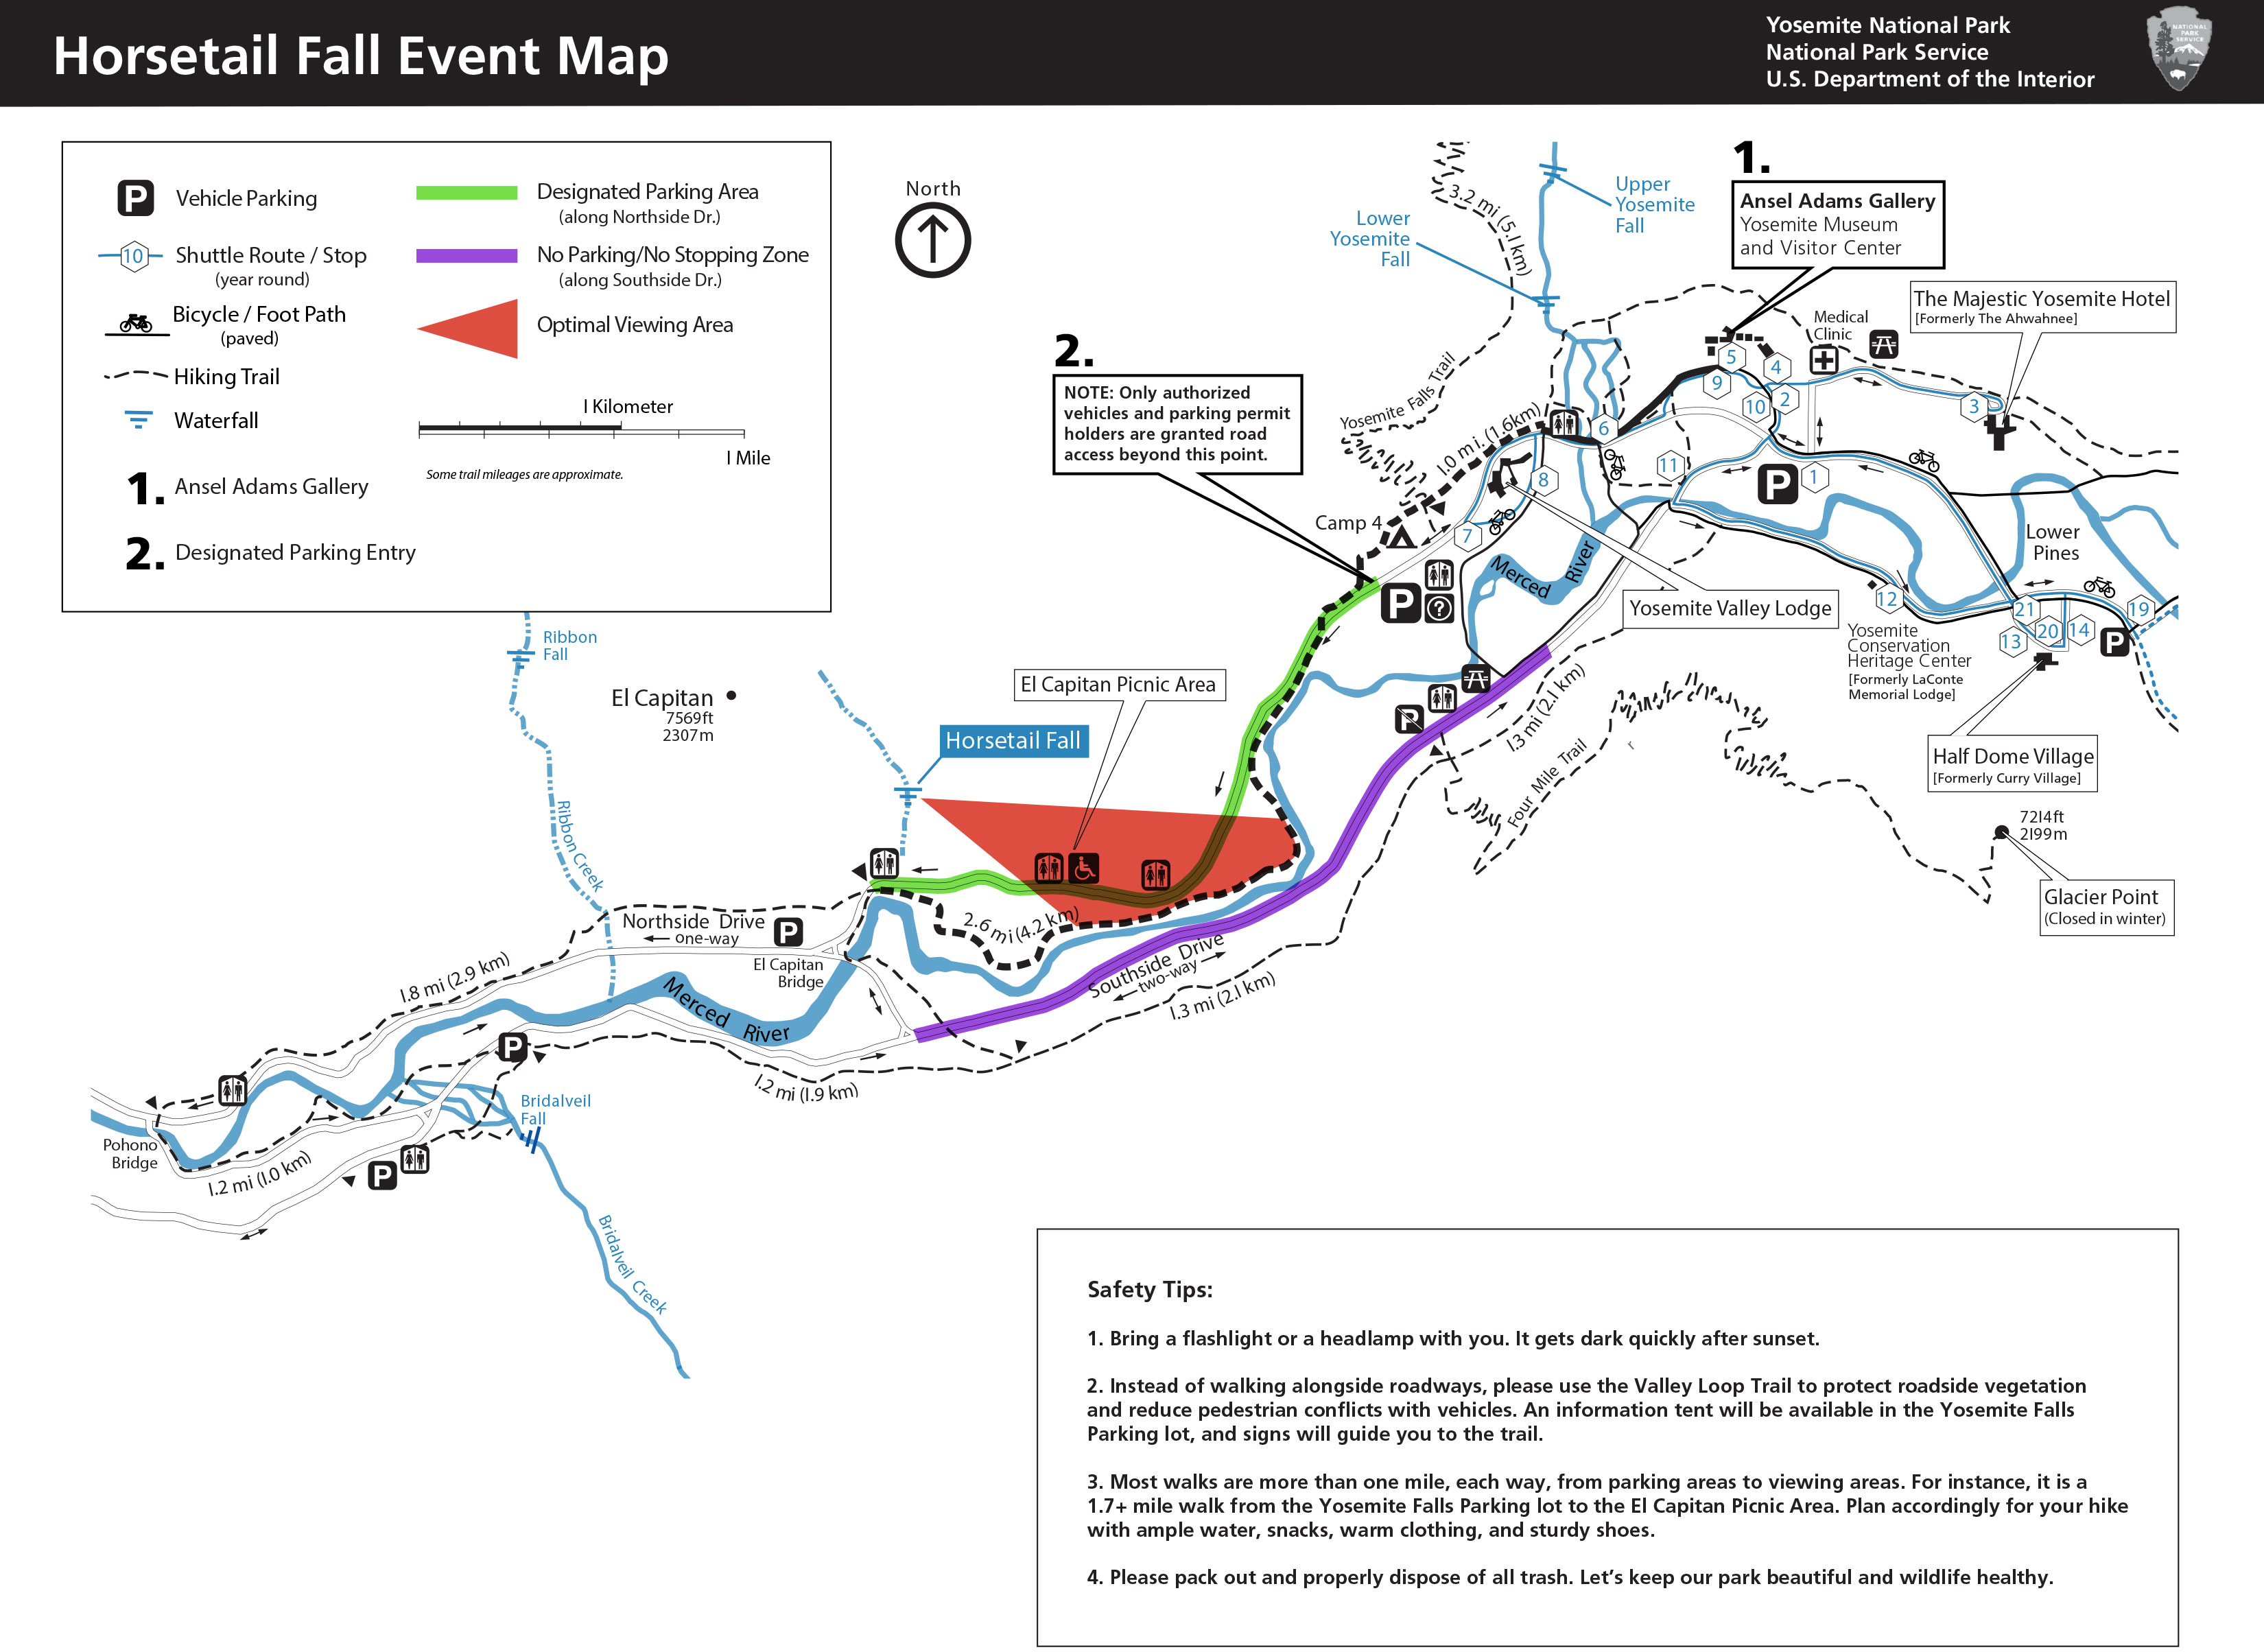 Horsetail Falls Event Map